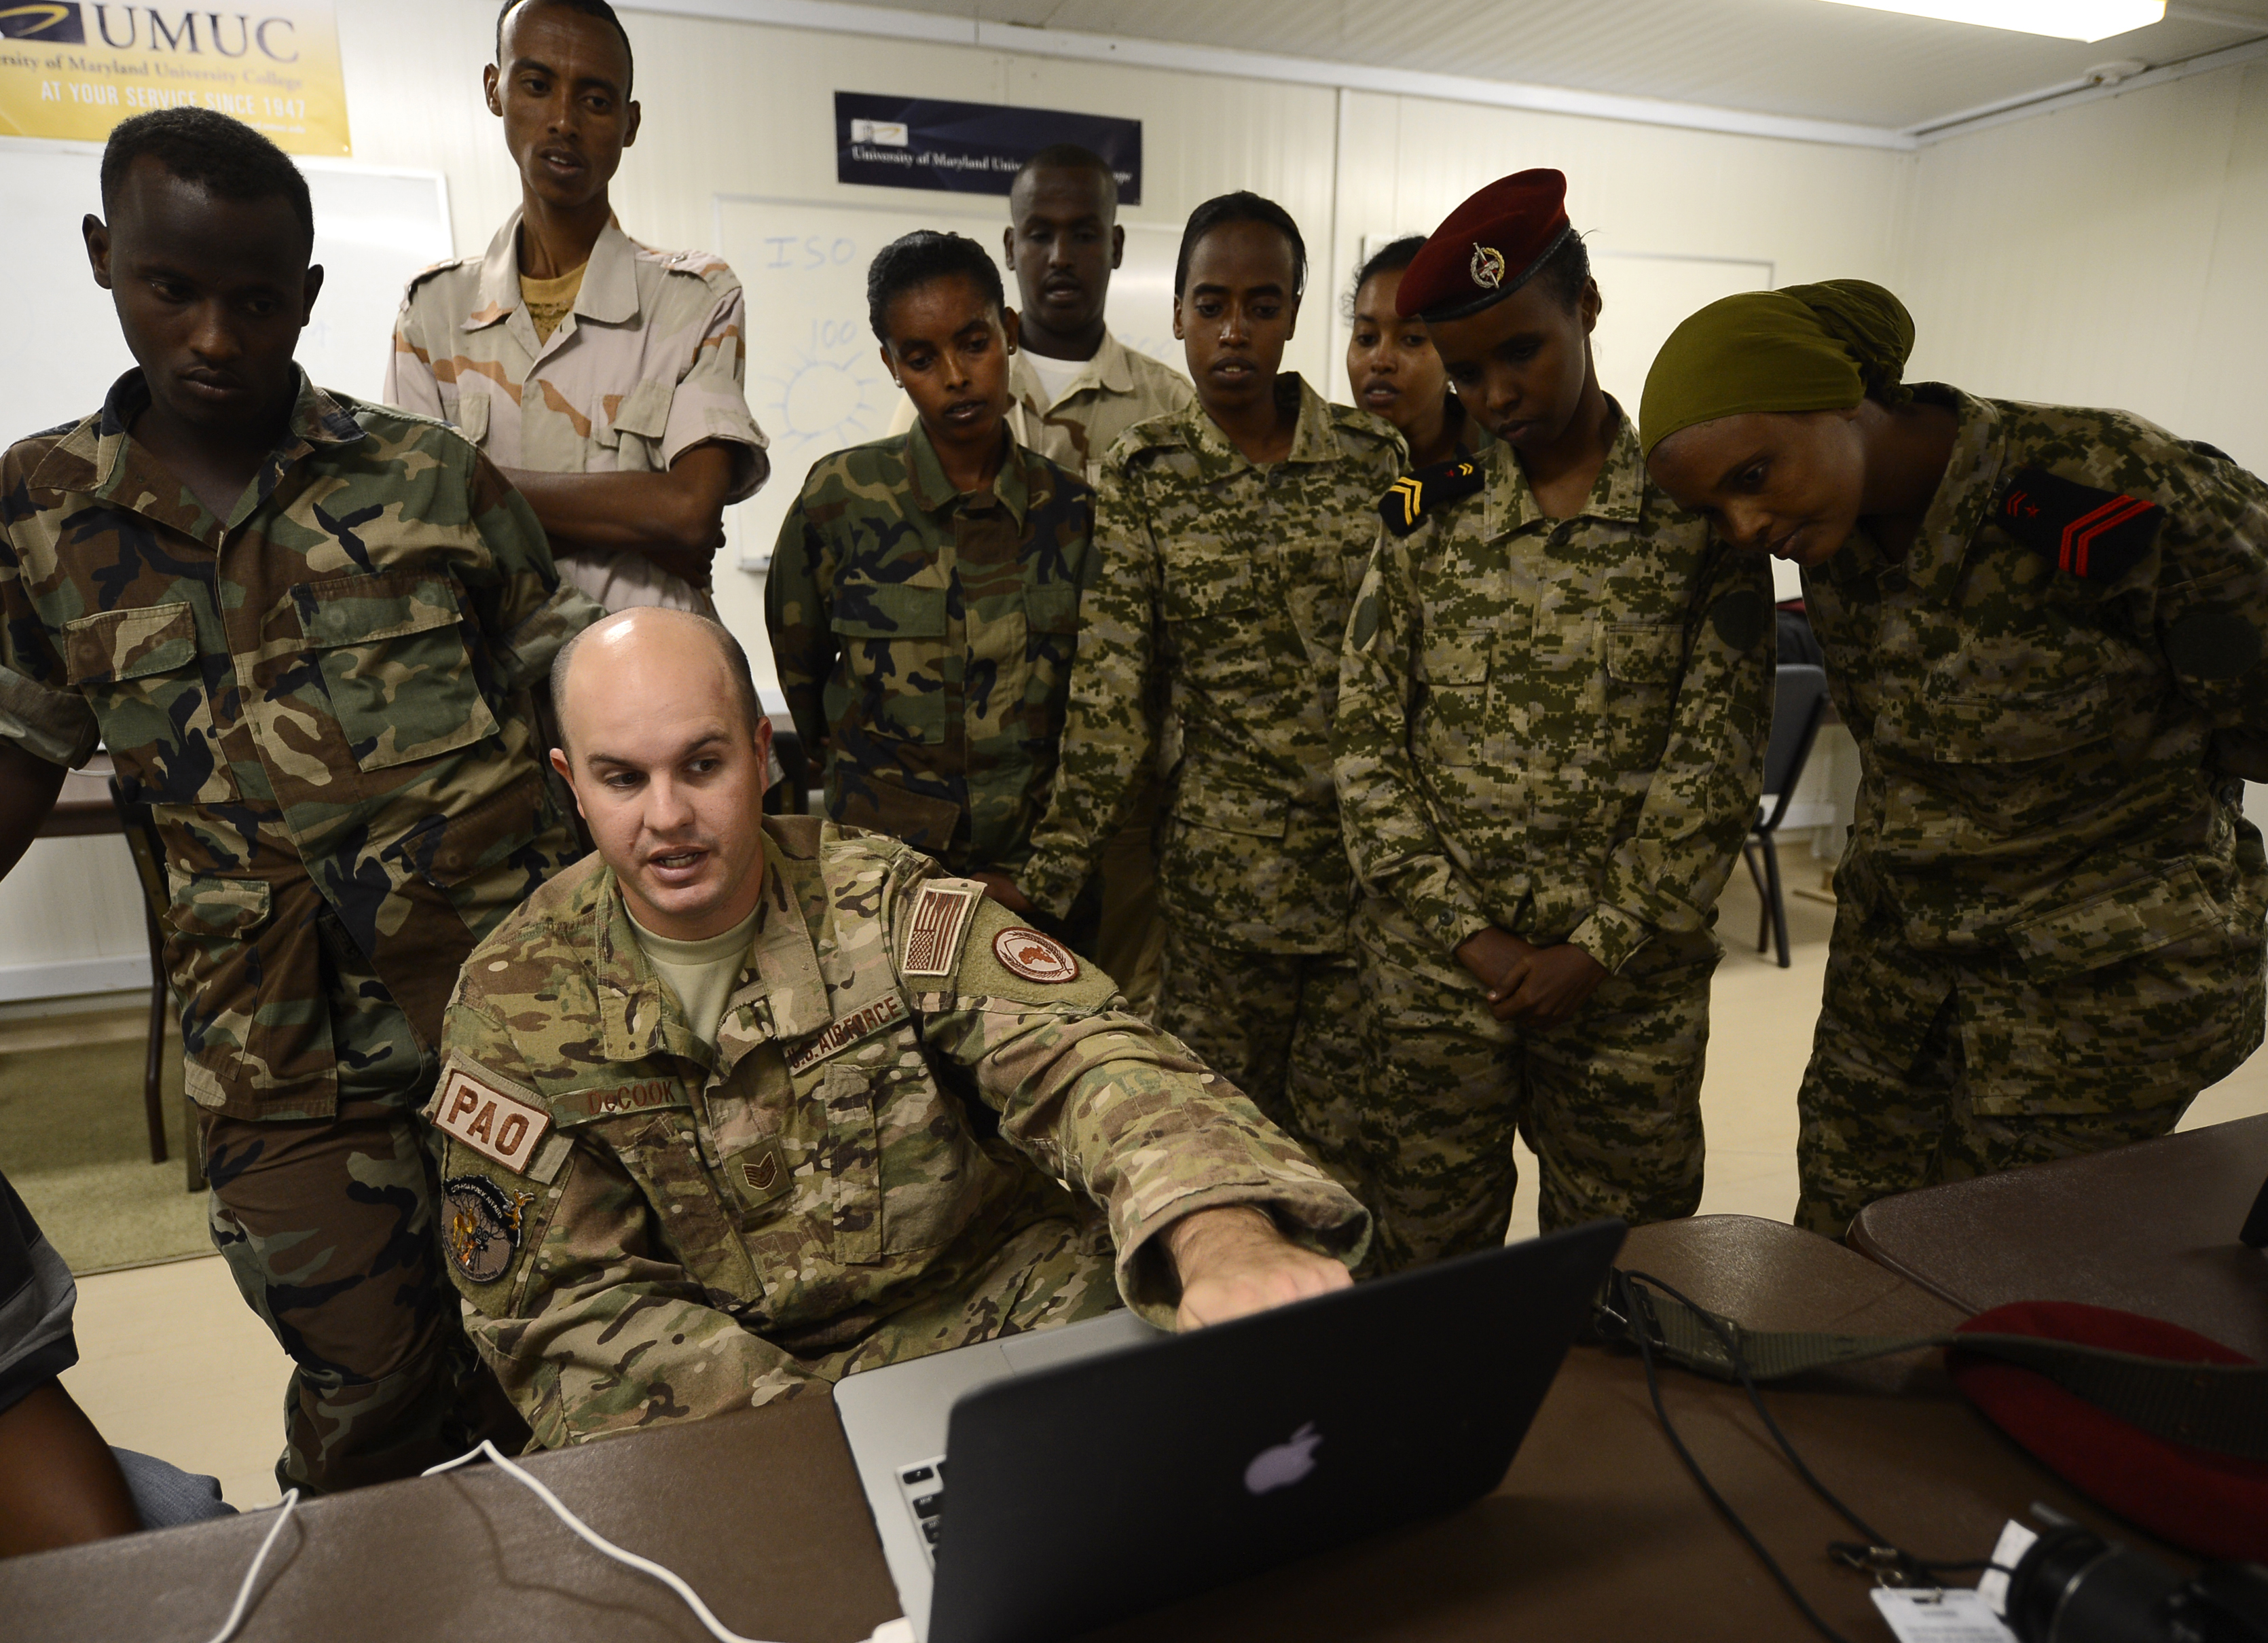 Tech. Sgt. Daniel DeCook, Combined Joint Task Force-Horn of Africa photojournalism NCOIC, explains U.S. imagery storage techniques to members of the Djibouti Armed Forces (FAD) Dec. 2, 2015, at Camp Lemonnier, Djibouti. Similar to U.S. military journalists, the Djiboutian photographers and videographers gather still and video imagery for mission documentation, media distribution and operational purposes. The engagement with the FAD enabled participants to share their knowledge and experiences with each other and build relationships between the two militaries. (U.S. Air Force photo by Senior Airman Peter Thompson)